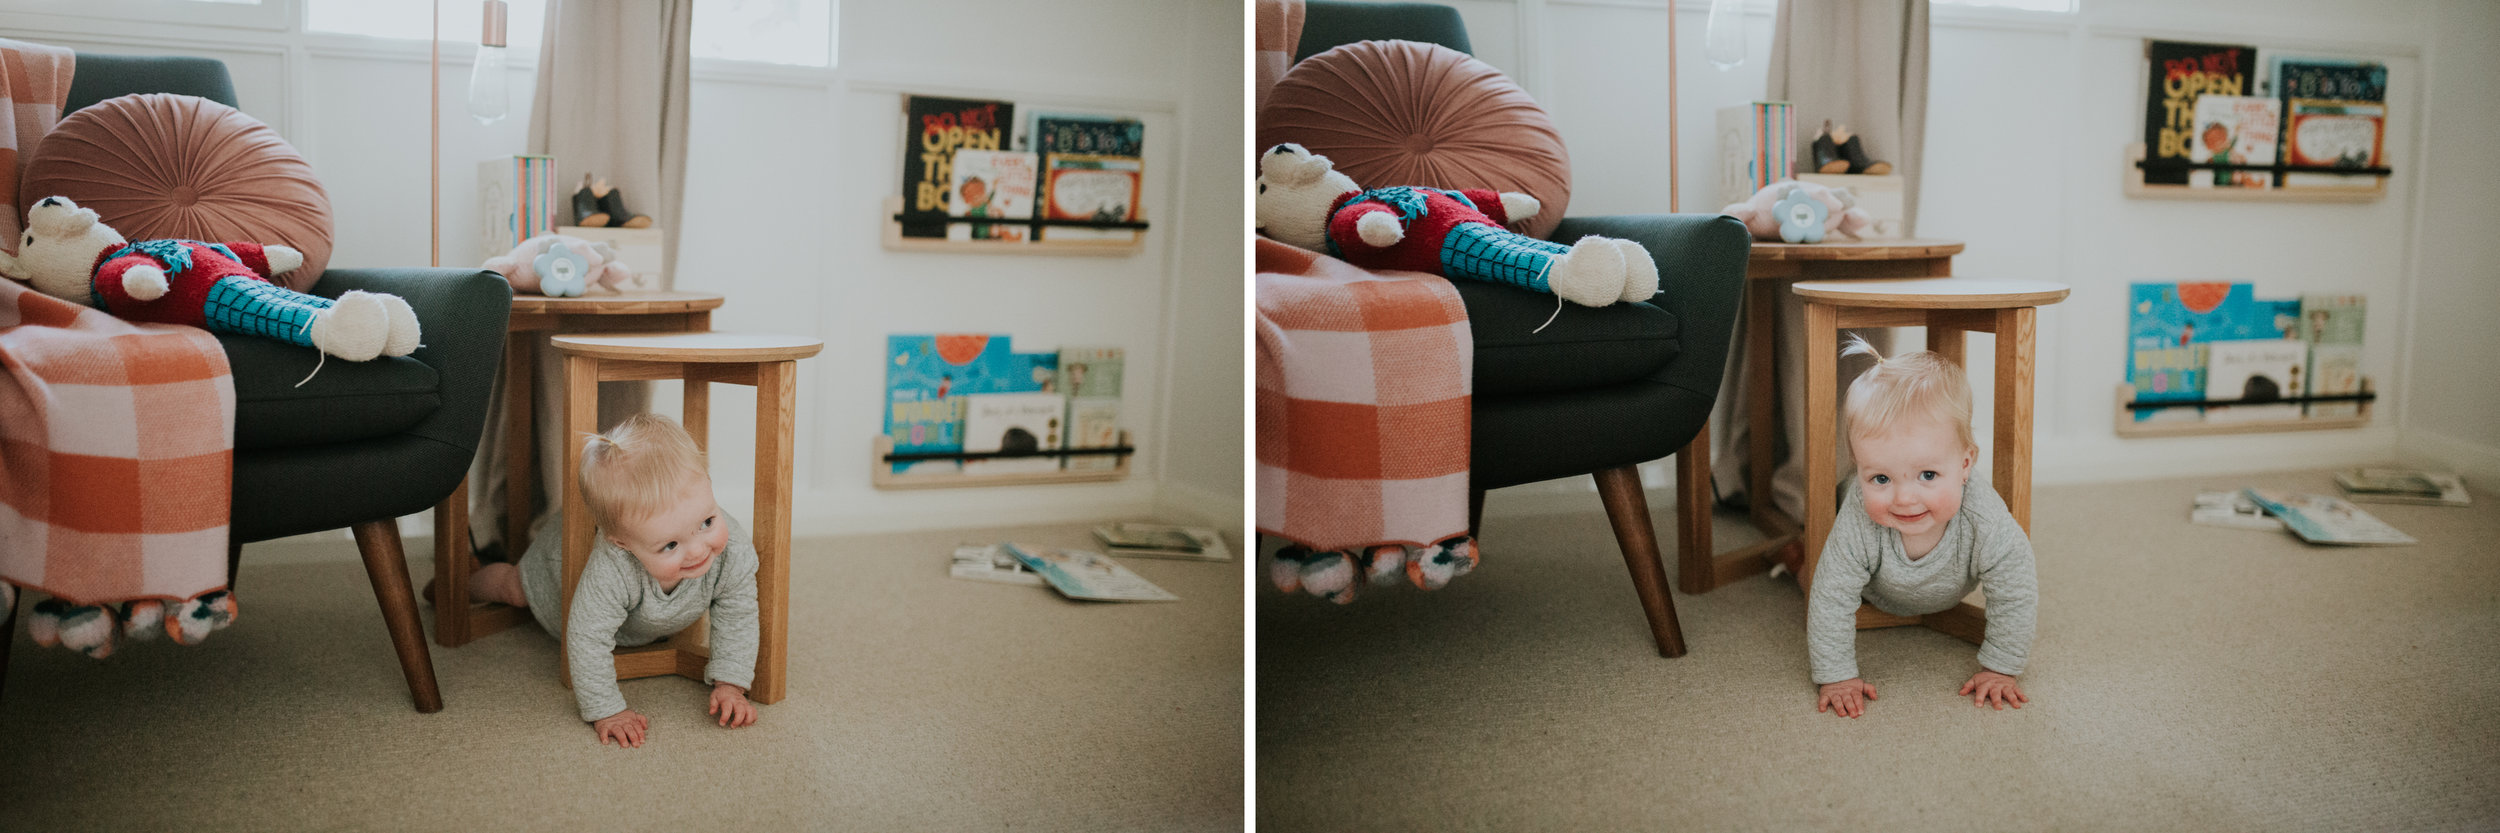 Rob+elkie+Loz+in+Home+Lifestyle+Session.jpg